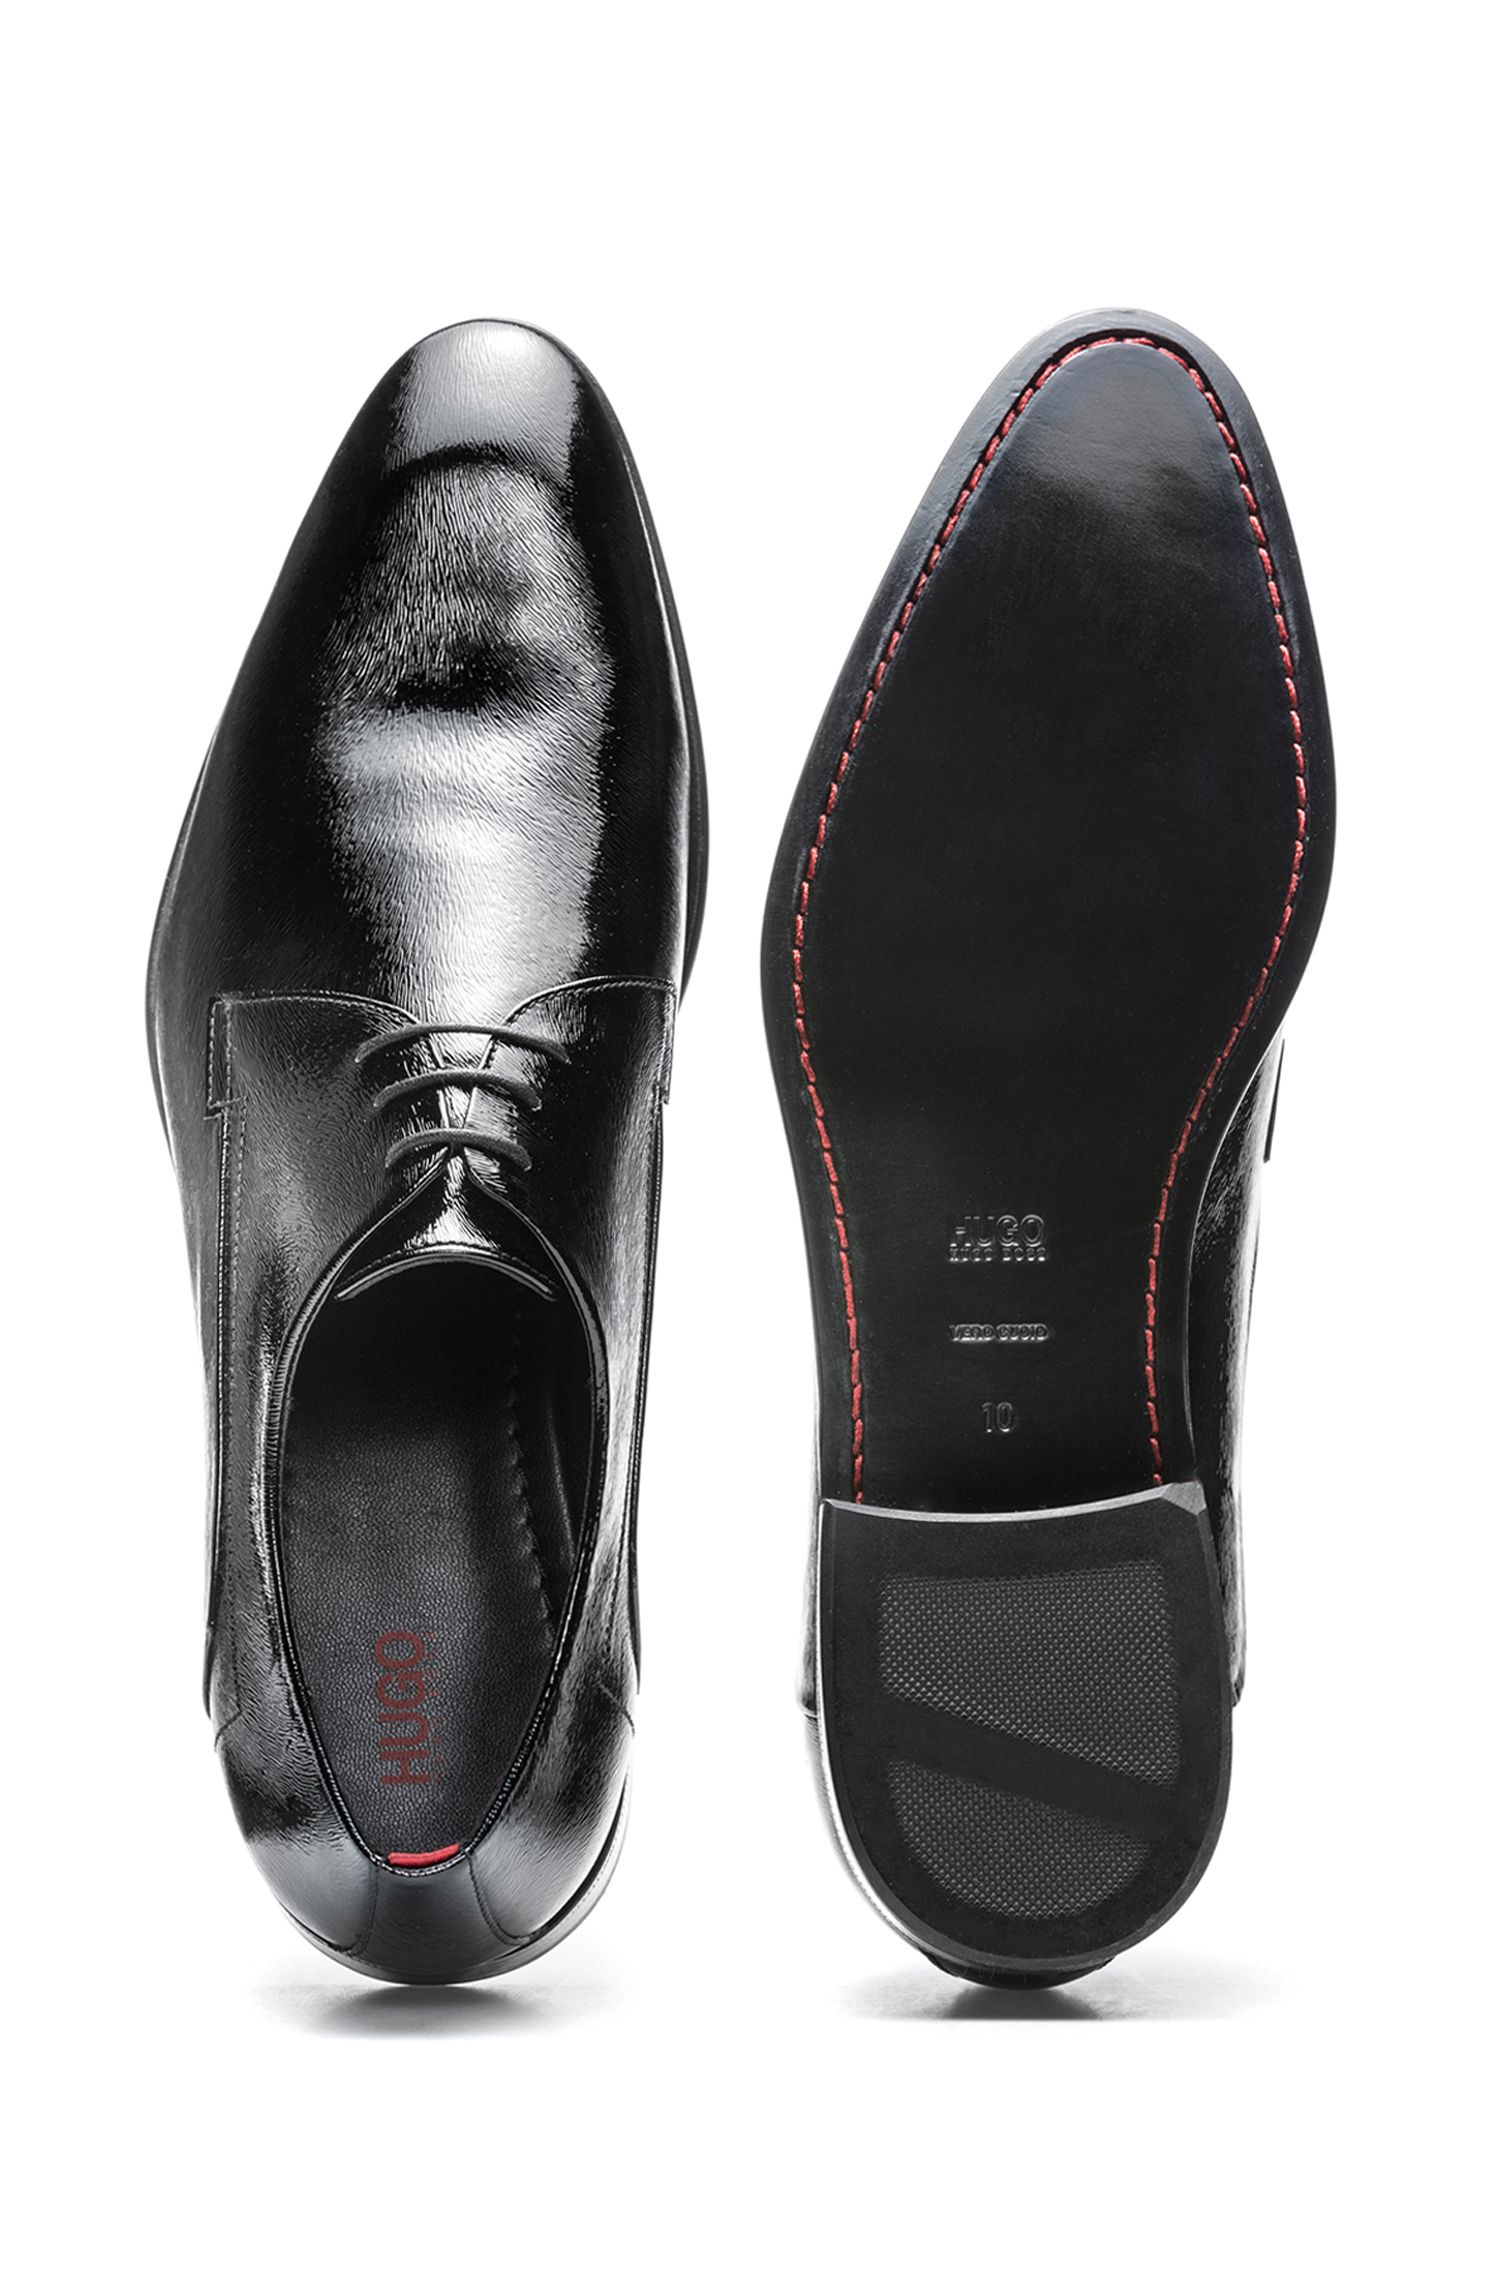 Leather-soled Derby shoes in pony-print patent leather